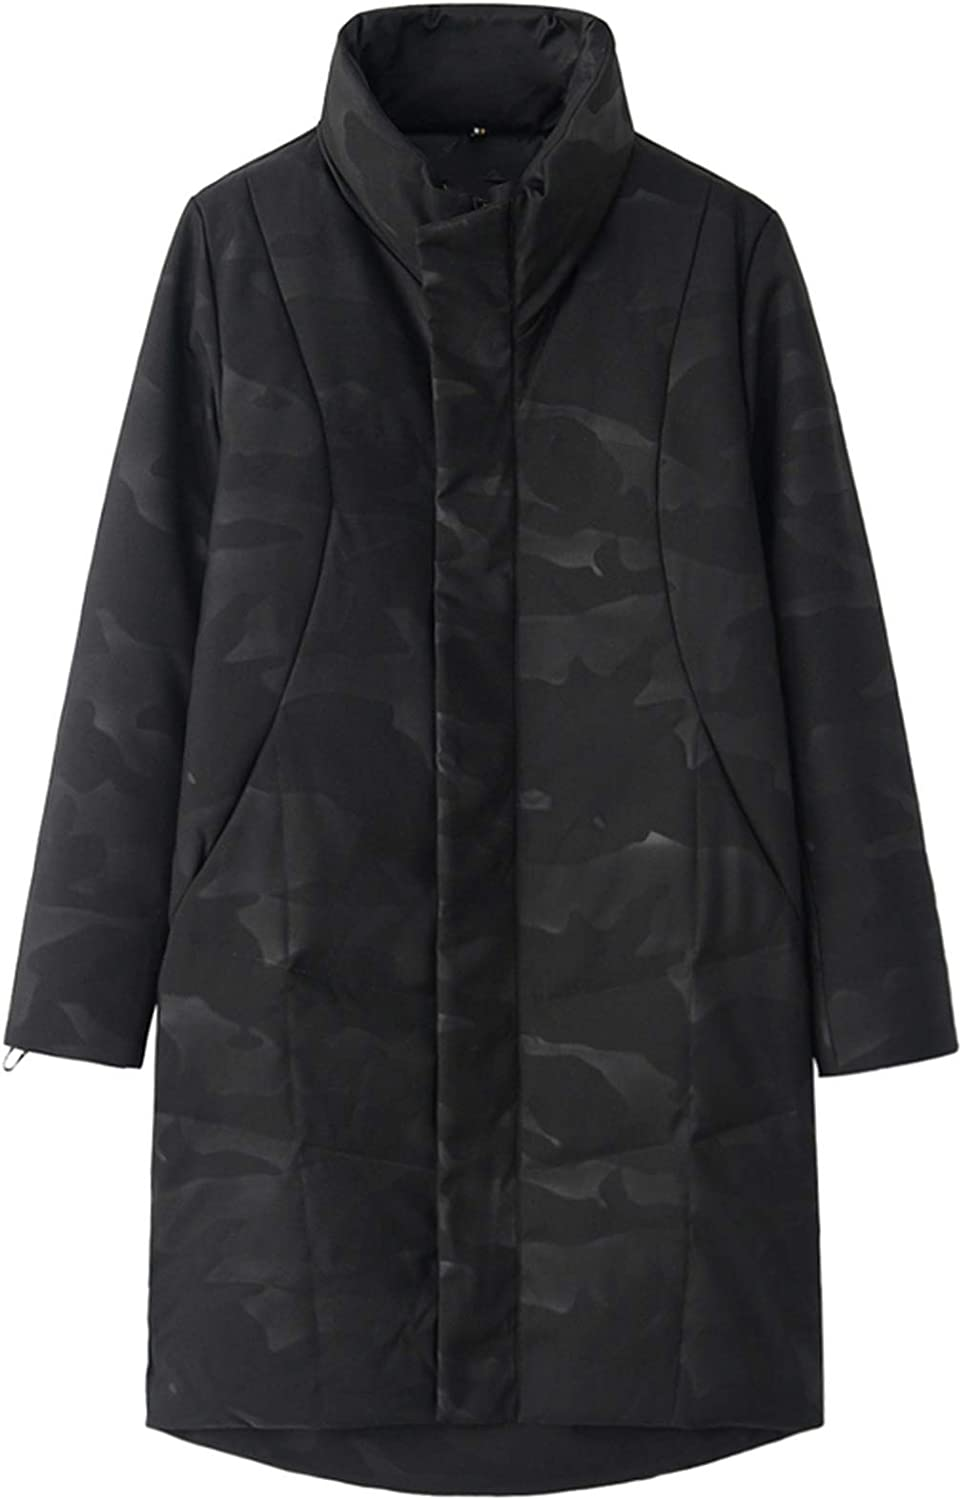 Men Black Long Down Jacket Lowest price challenge Thick Co Warm Winter Stand Selling rankings